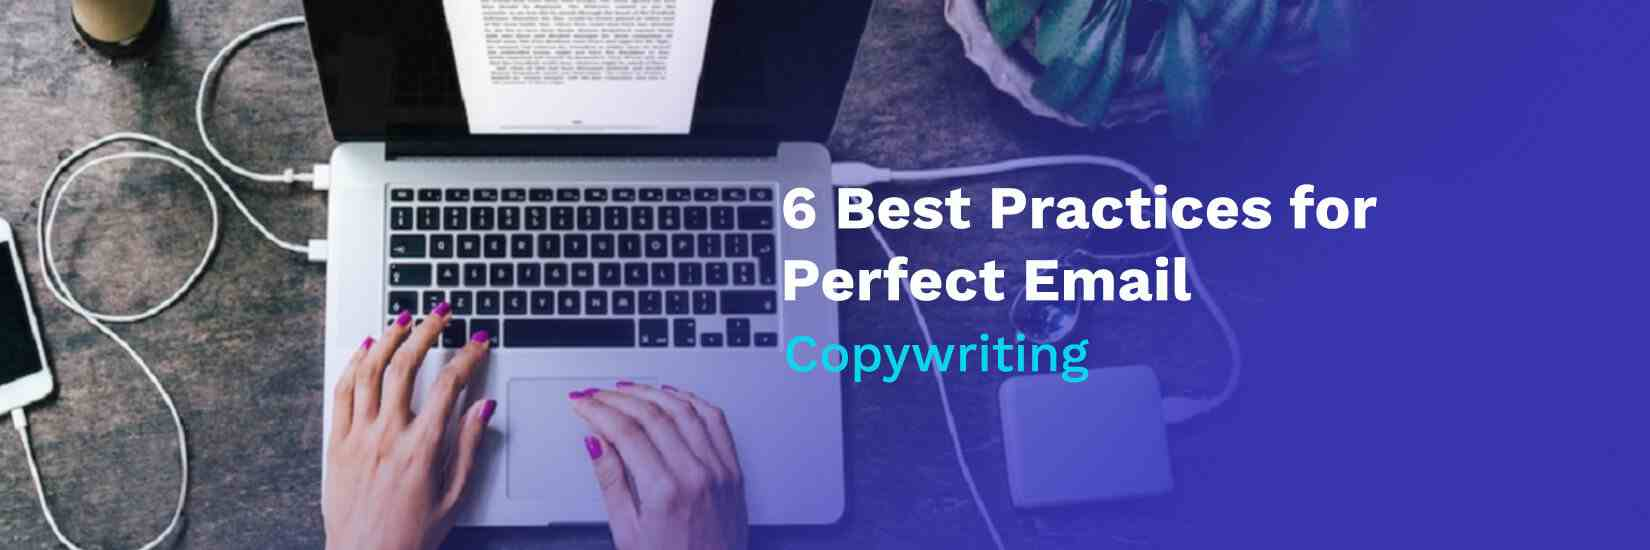 Copywriting Best Practices for Avoiding the Spam Folder